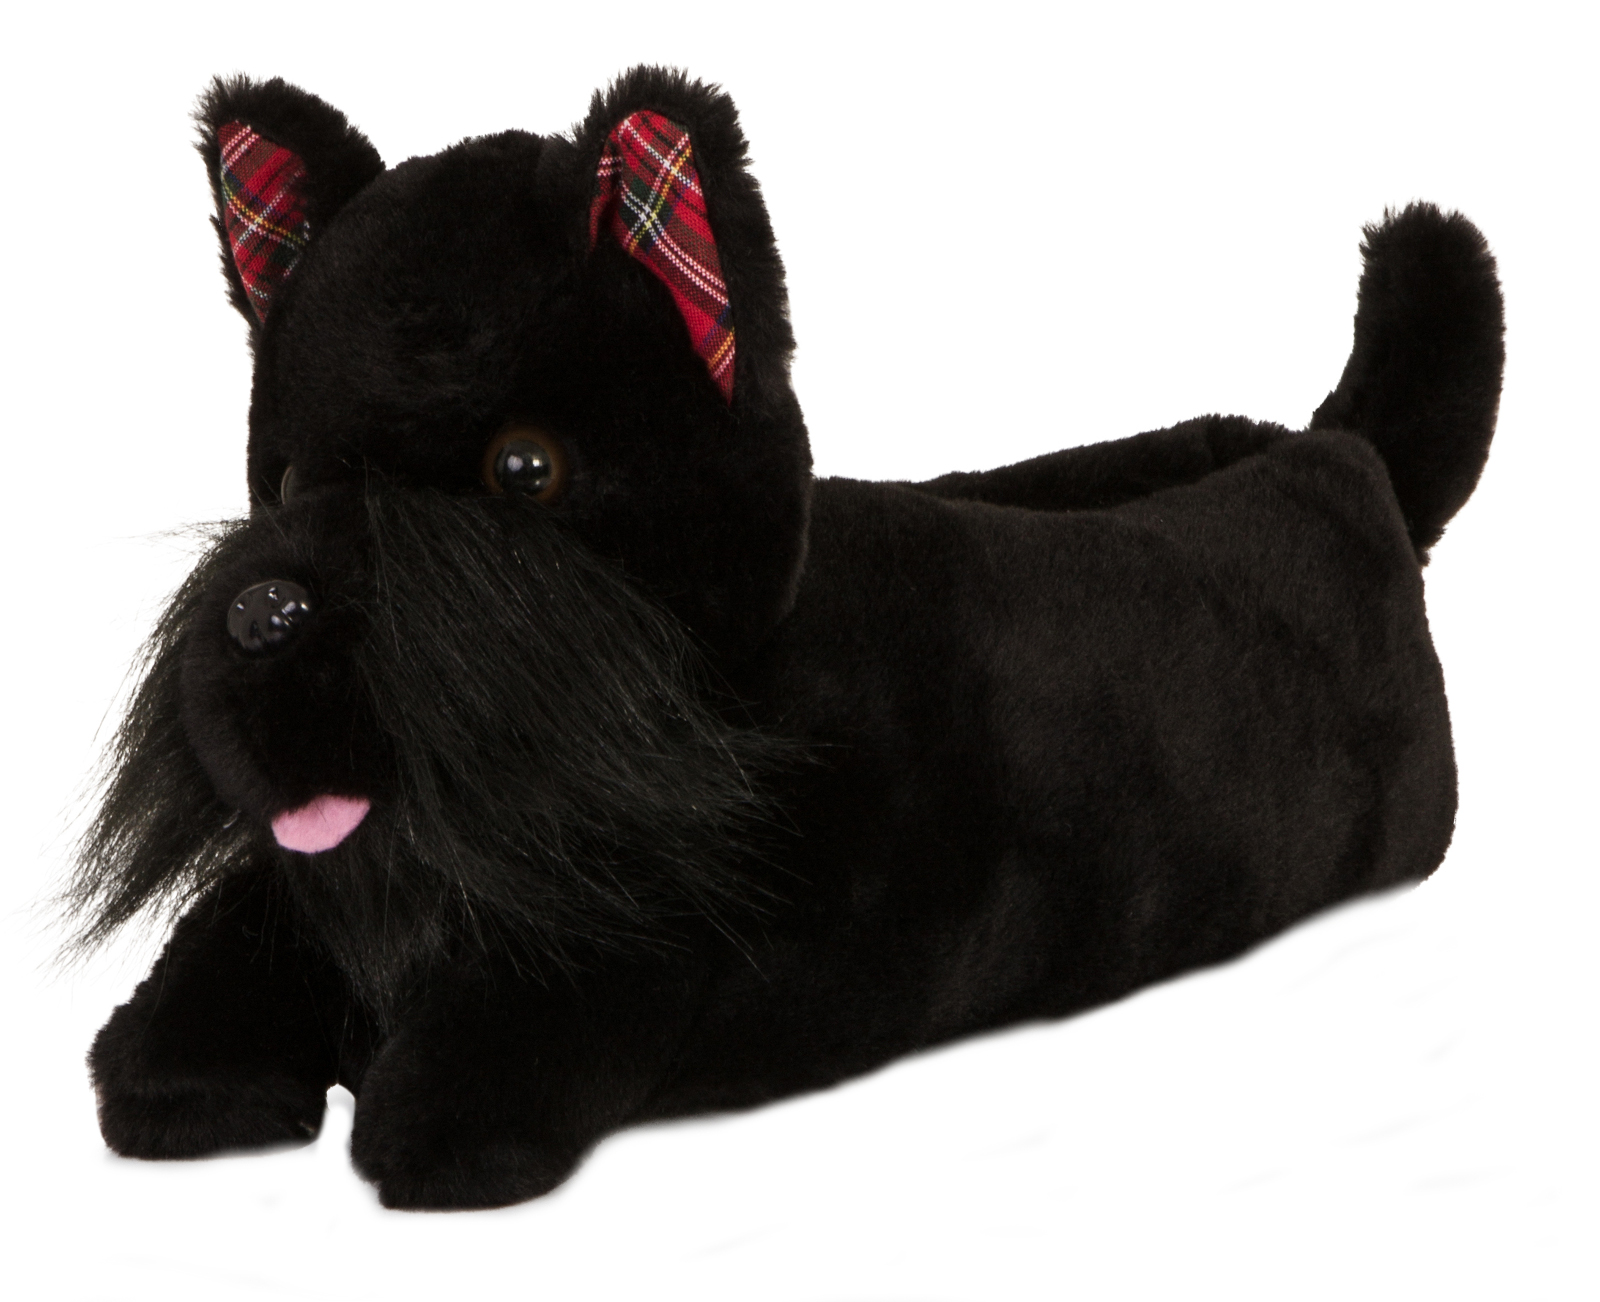 Girls Black Scotty Dog Faux Fur 3D Novelty Slippers In 3 UK Sizes Ladies